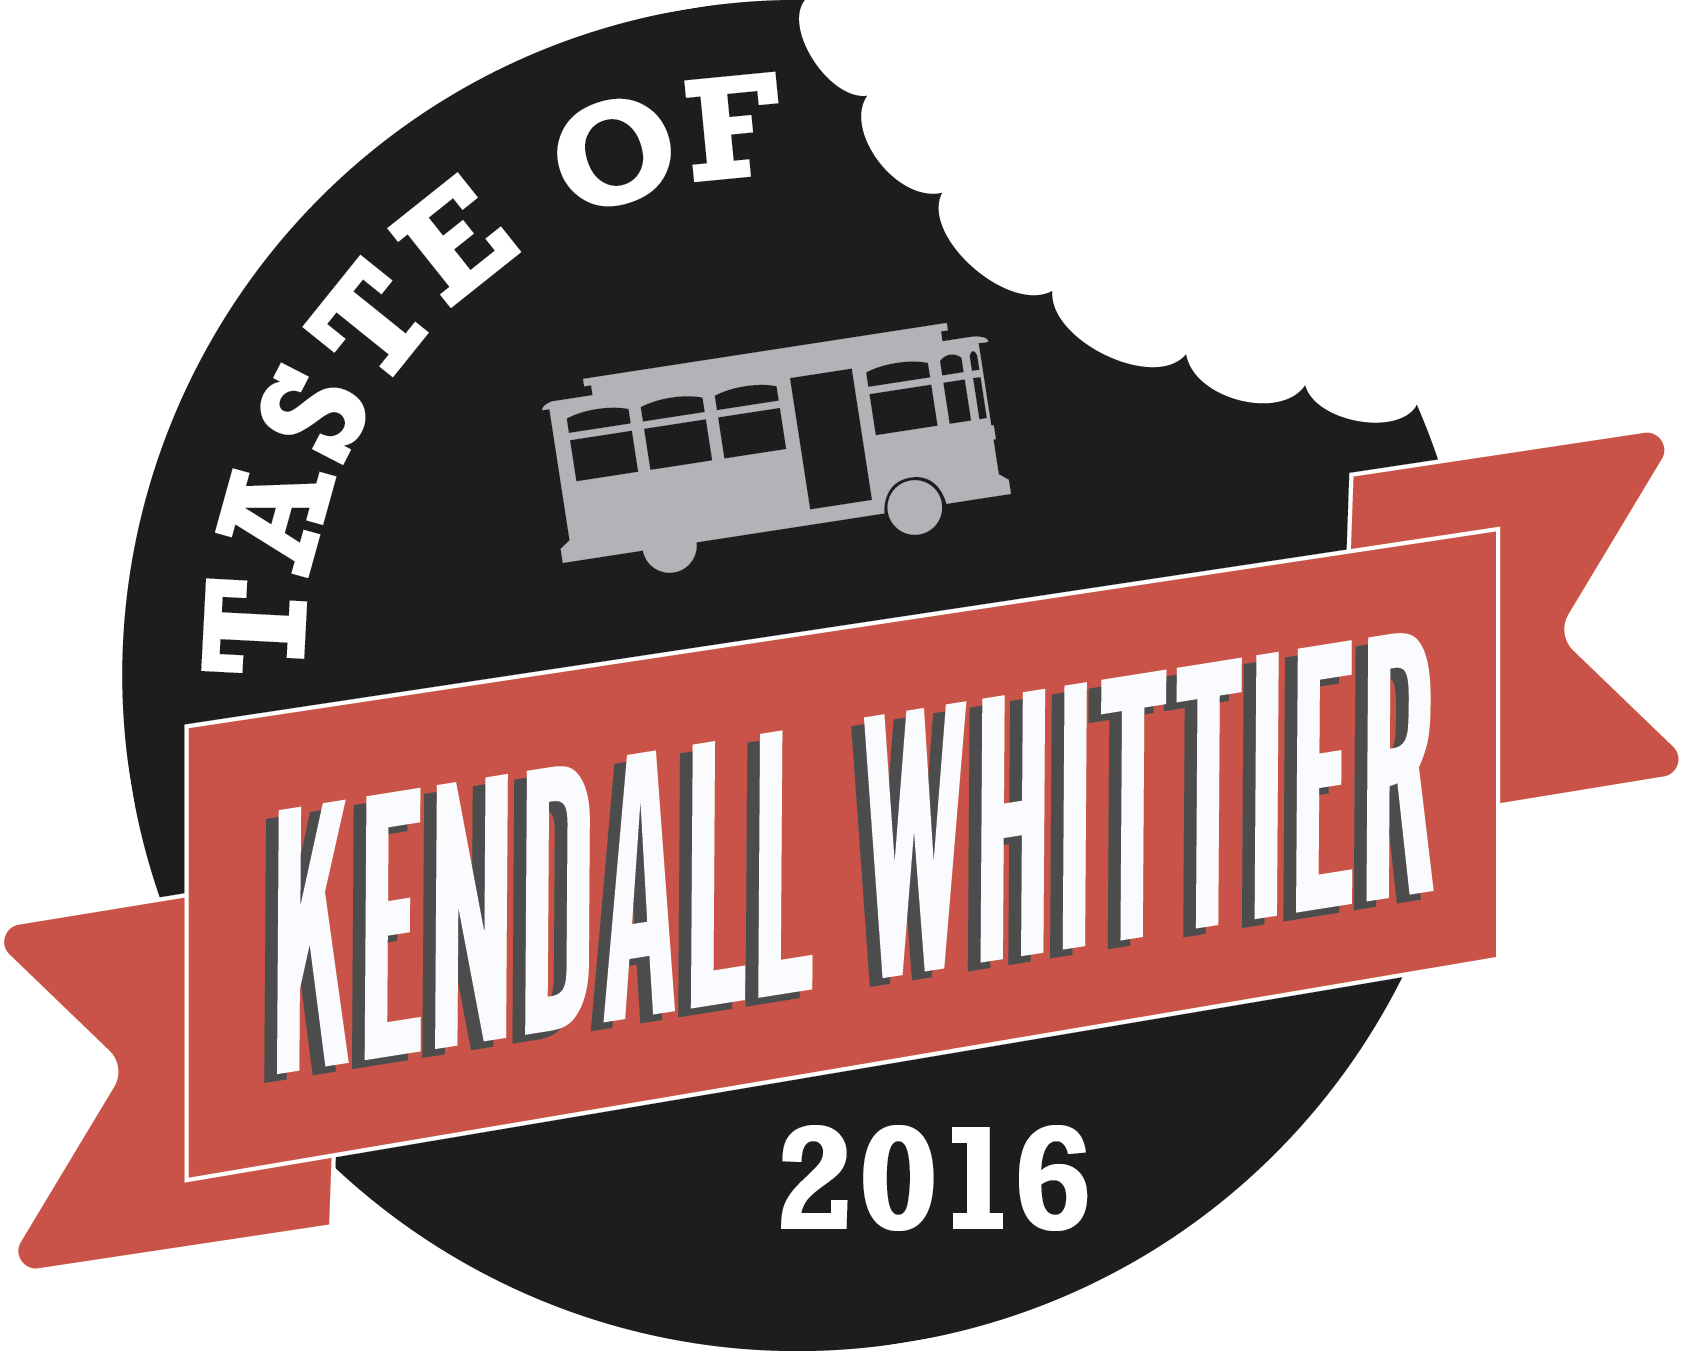 Taste Of Kendall Whittier 2016 Tickets Tue Sep 20 2016 At 5 00 Pm Eventbrite